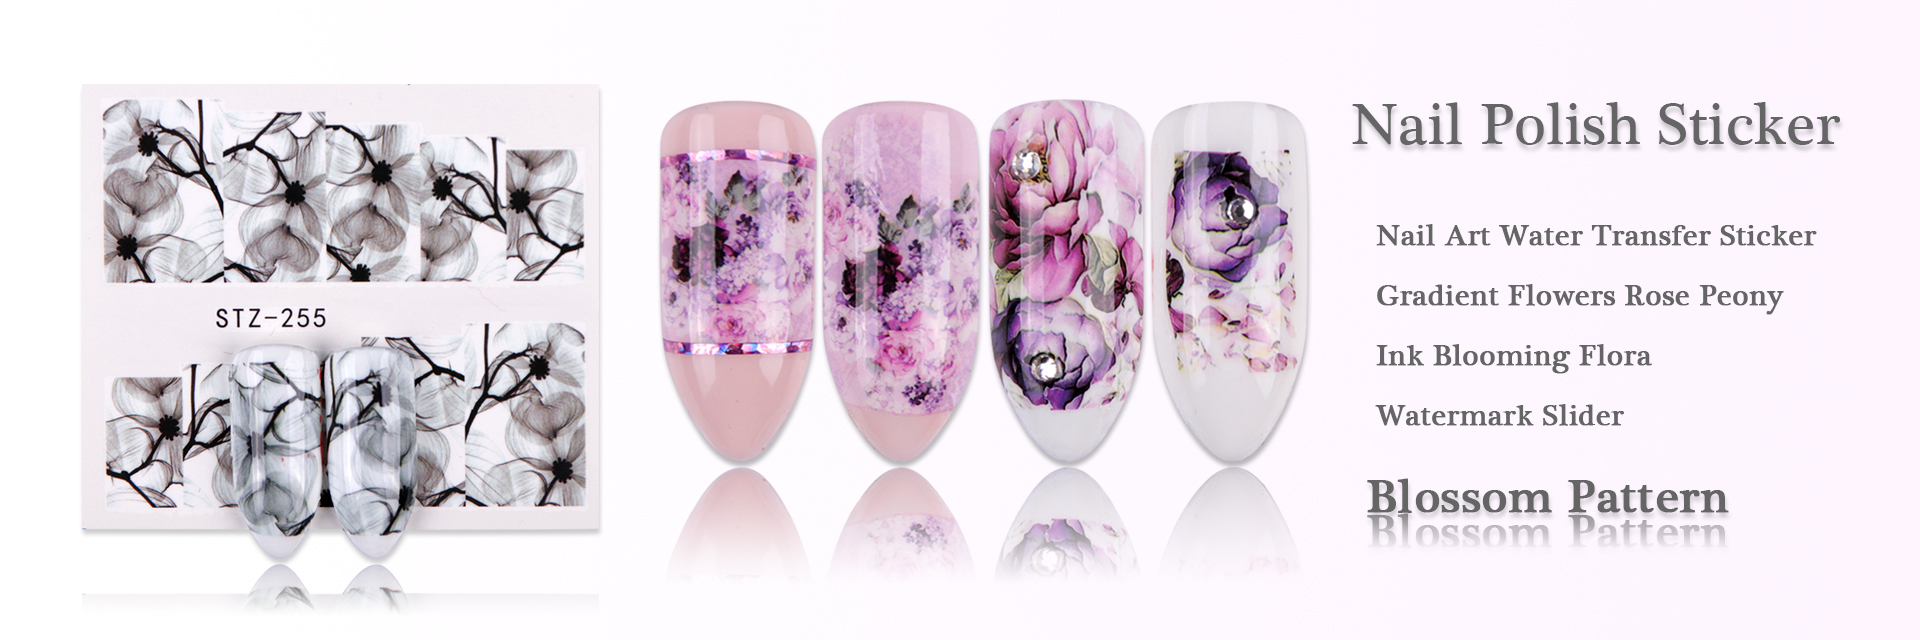 Jiji Nail Art Products Small Orders Online Store Hot Selling And